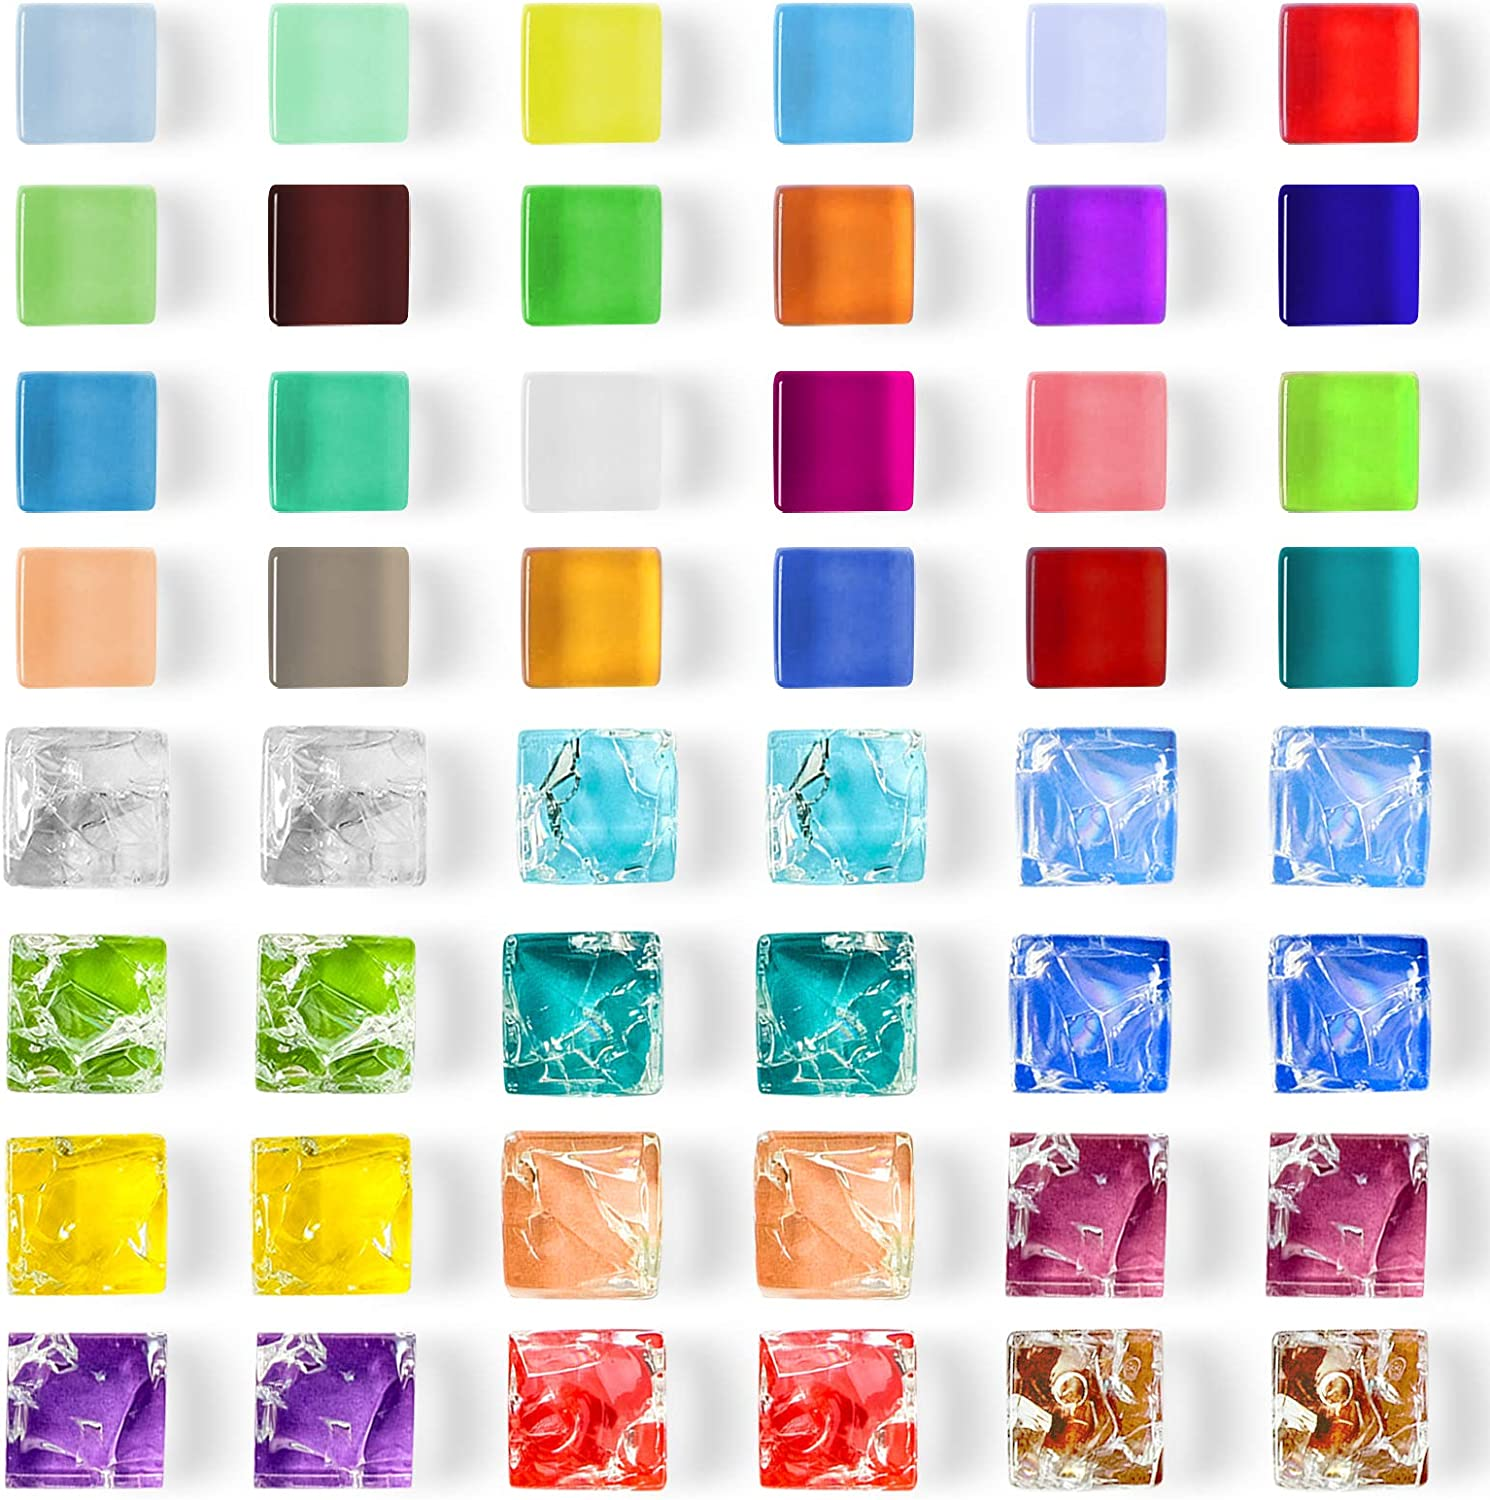 ZYNERY 48 PCS Glass Refrigerator Magnets/Fridge Magnets/Strong Office Magnets/Kitchen Colorful Magnets/Cute Decorative Magnets for Kids/Whiteboard/Pictures/Map/Adults, 36 Colors